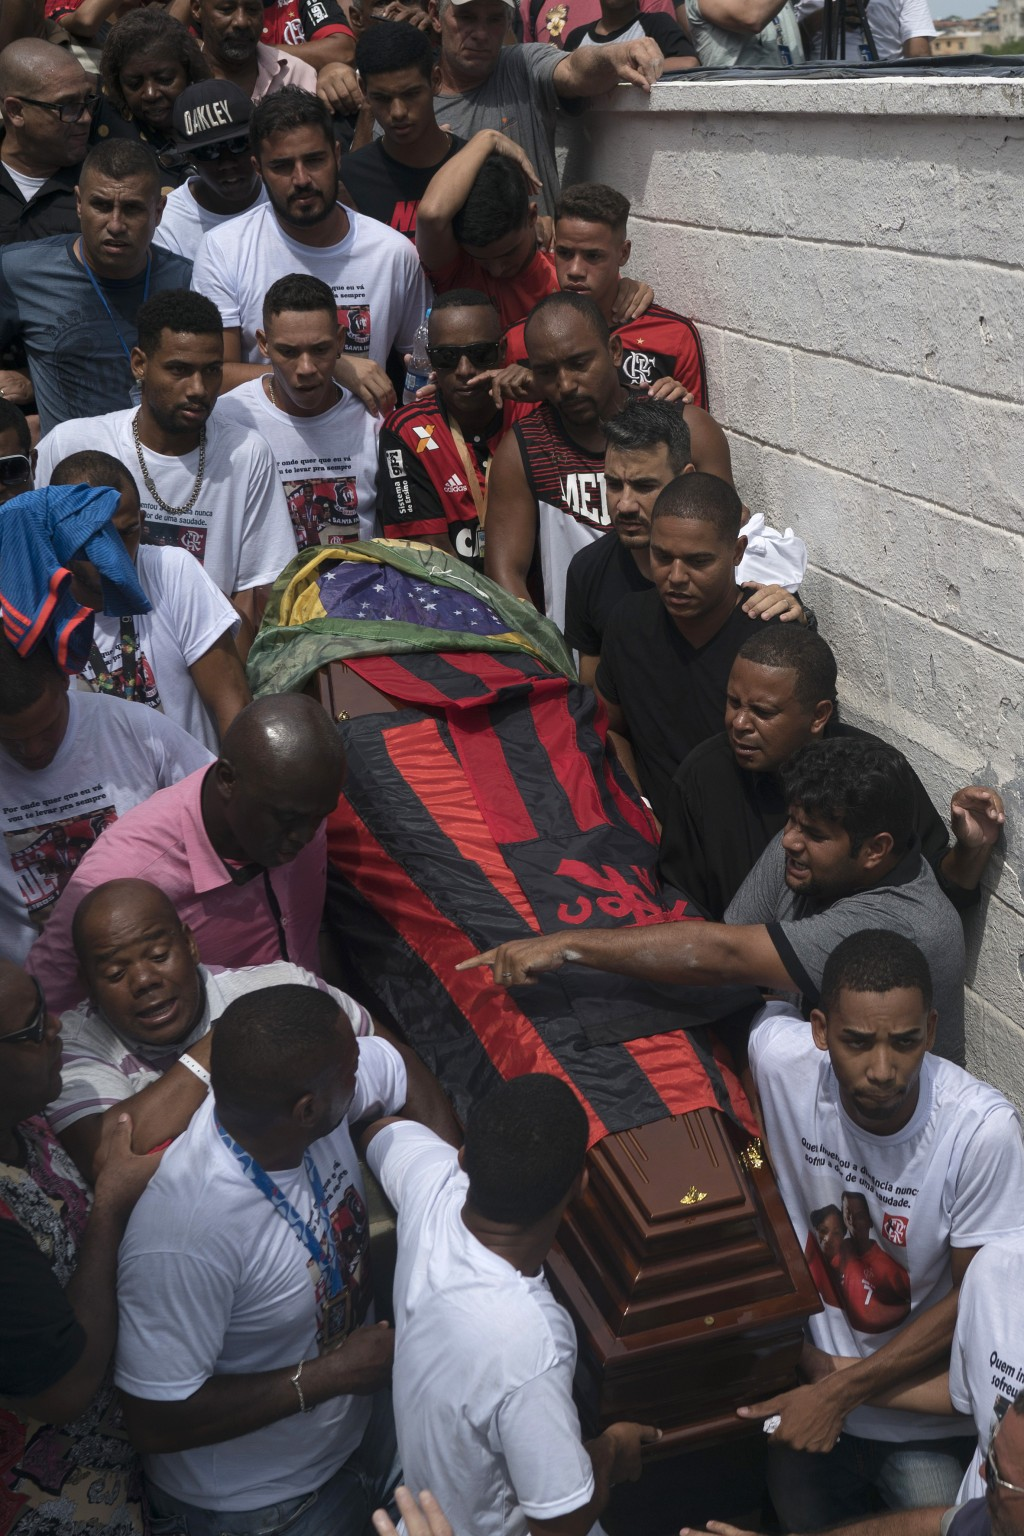 Friends and relatives carry the coffin that contain the remains of Samuel de Souza Rosa, one of the 10 young soccer players killed in a fire at the tr